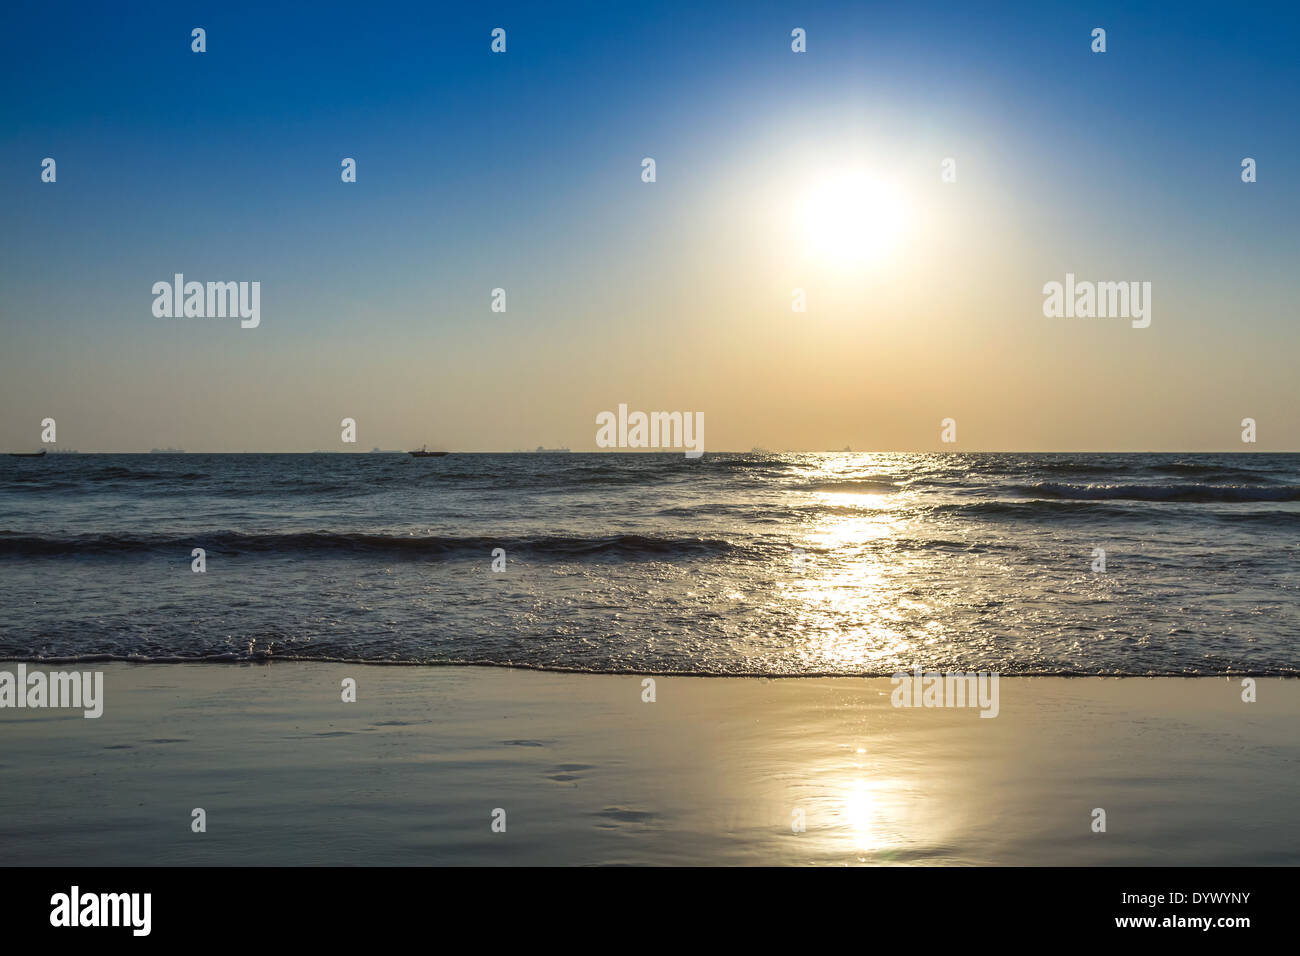 Scenic view from beach in Goa to beautiful sunrise above the Arabian sea. Sun reflection on sea surface - Stock Image